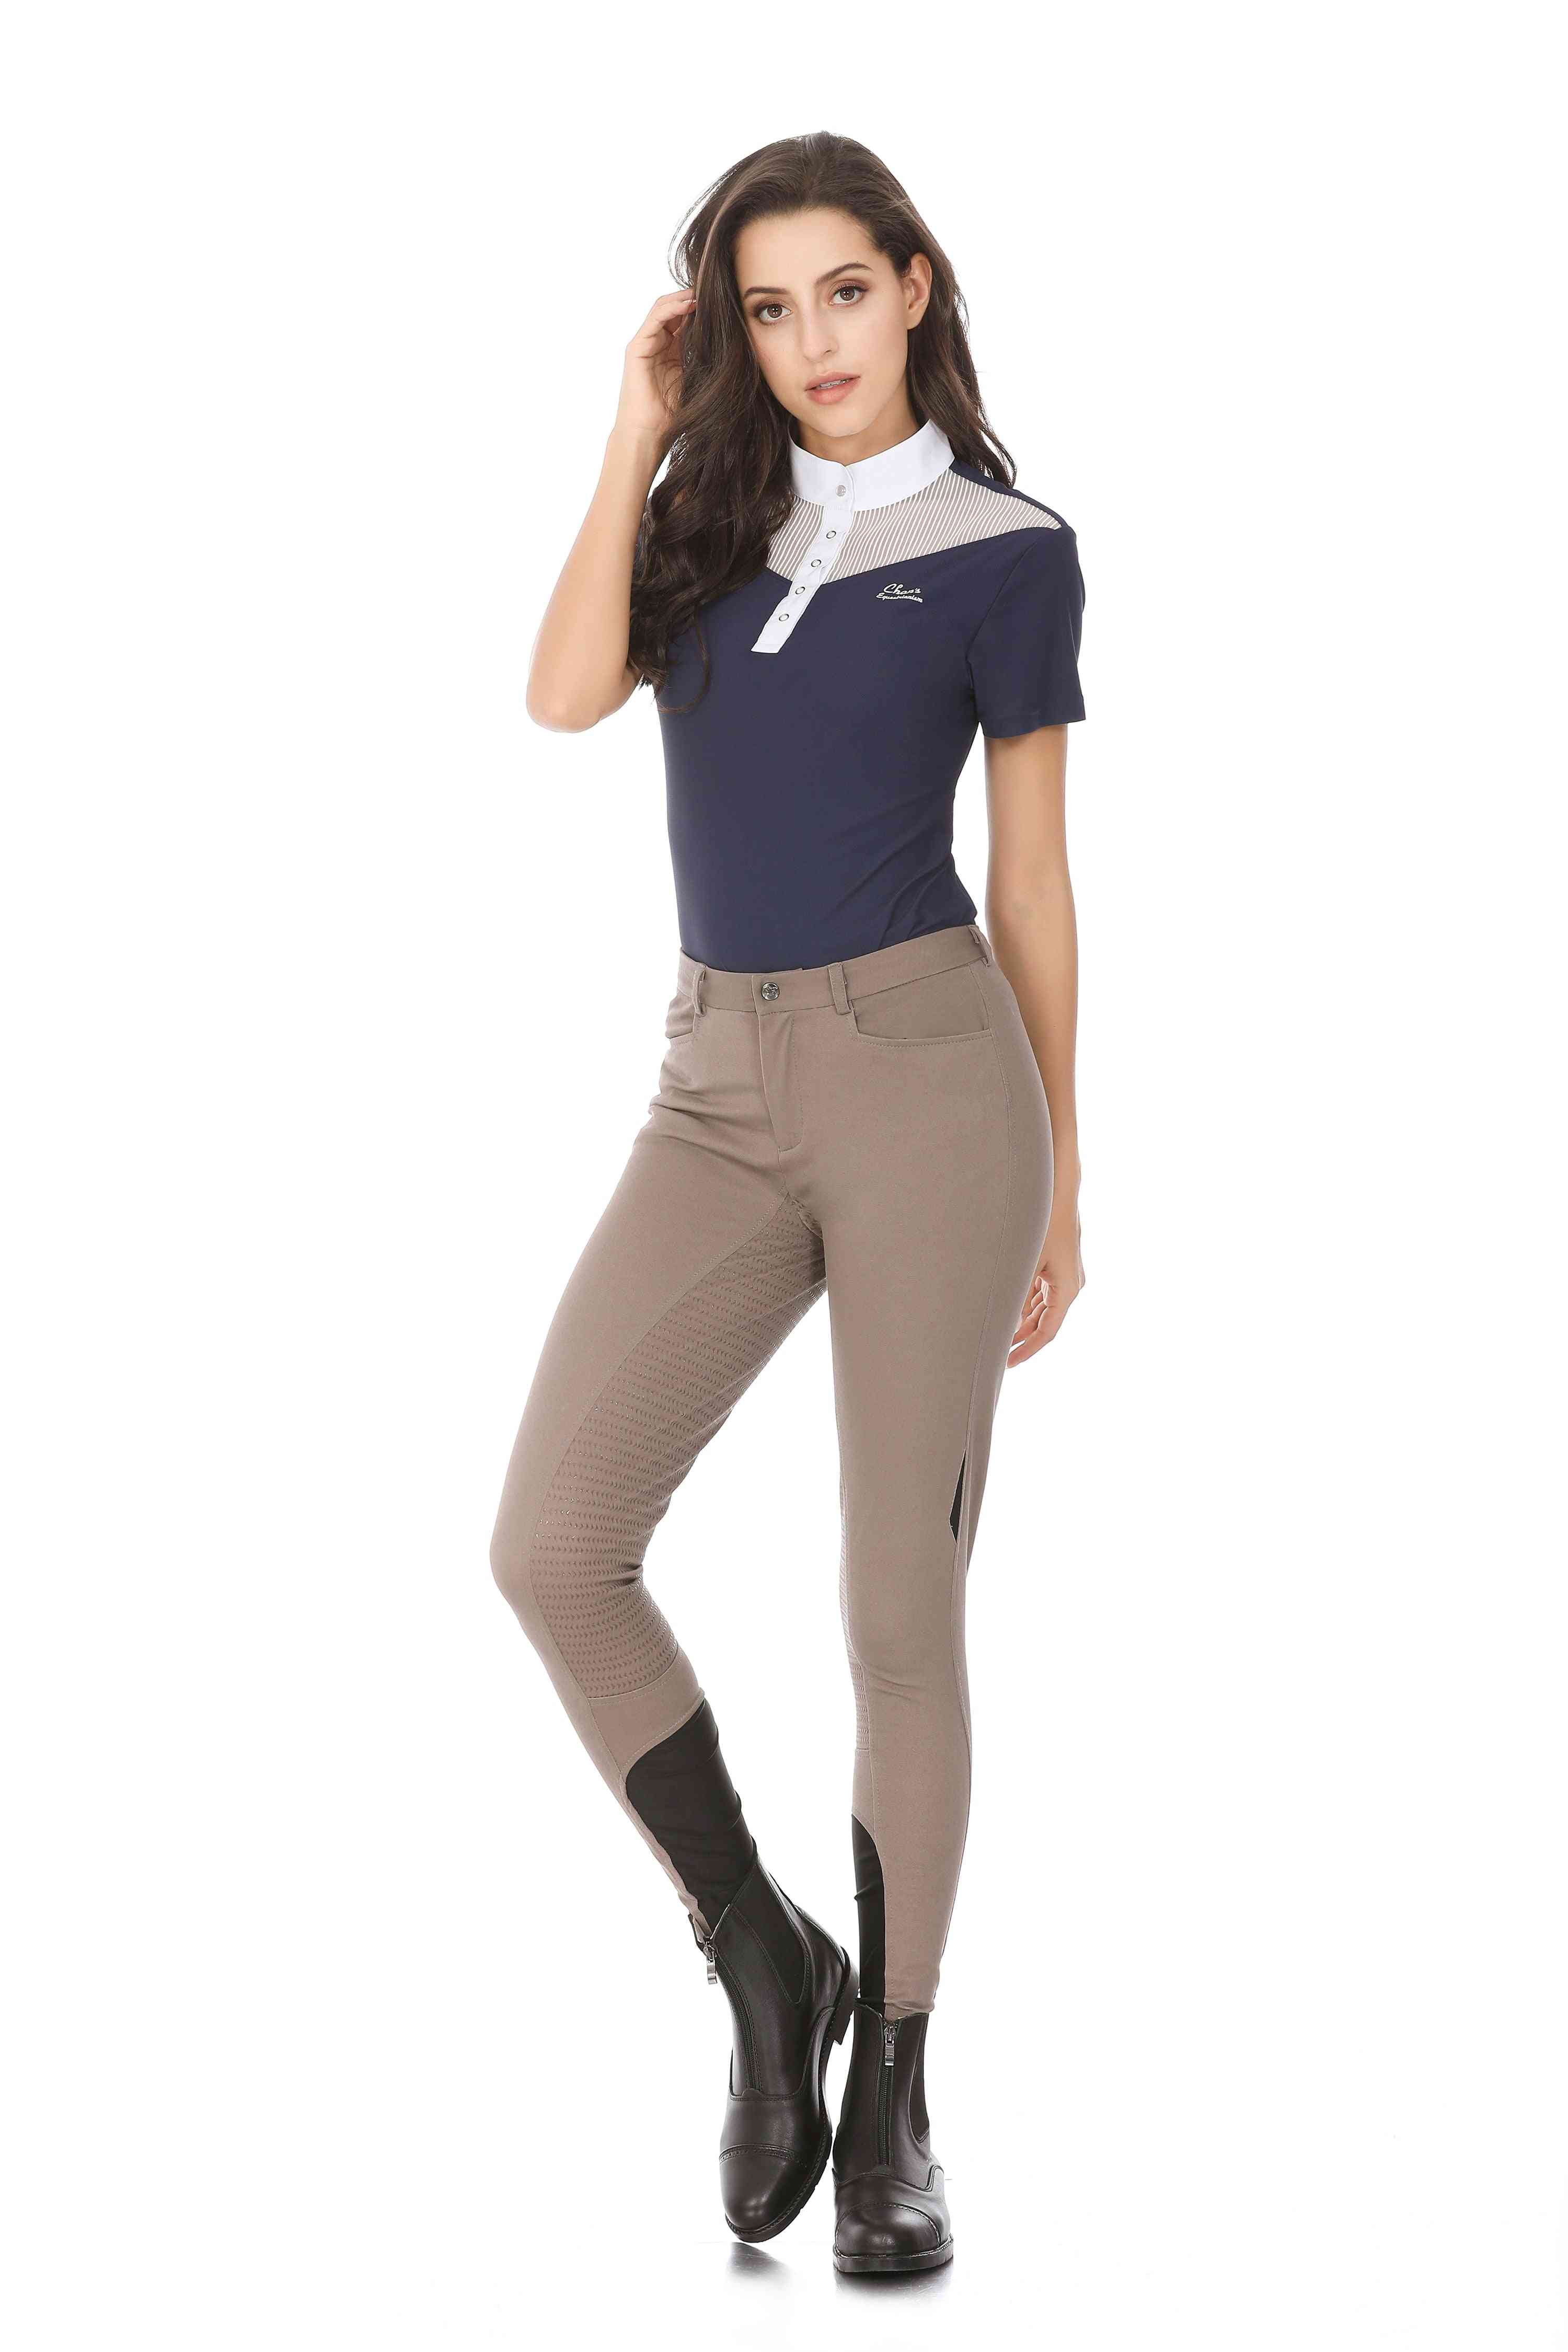 Silicone Horse Riding Pants